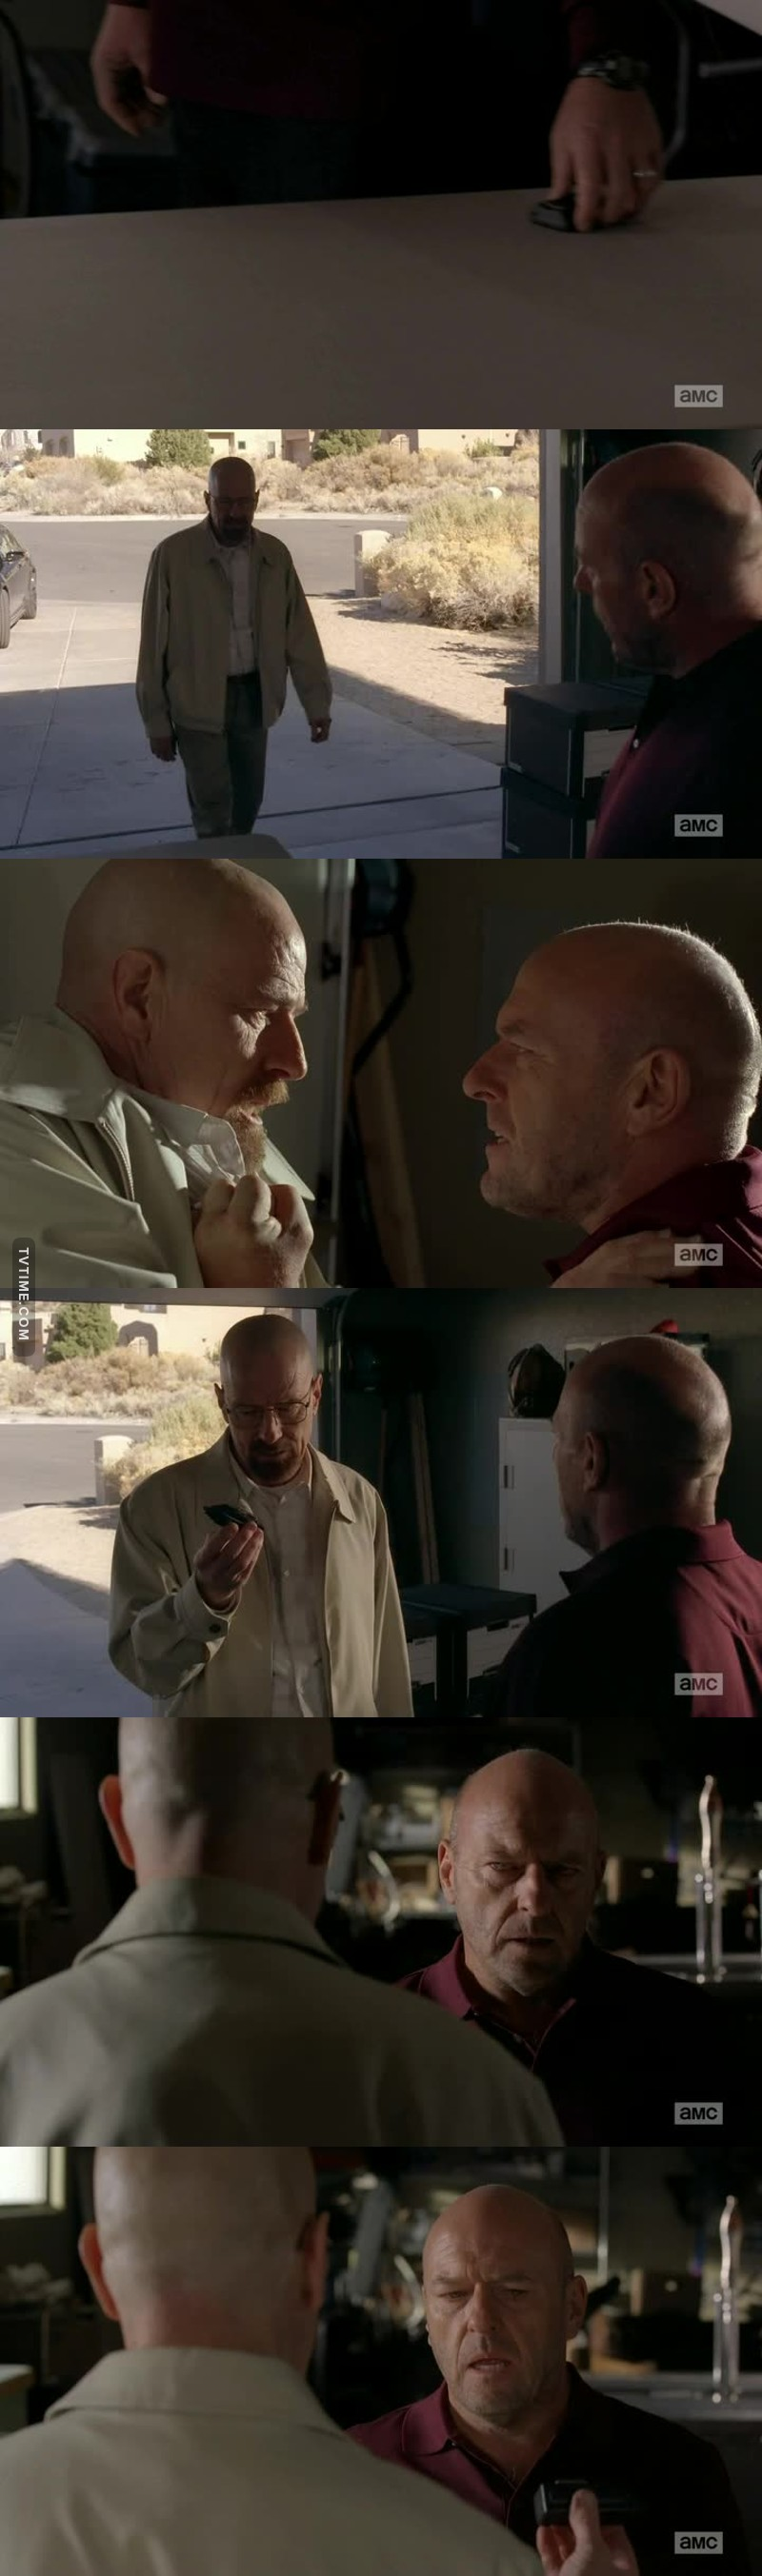 Woooow epic episode 😱😱 seriously I don't know who's better Hank or Walt I love them both I feel sad for them